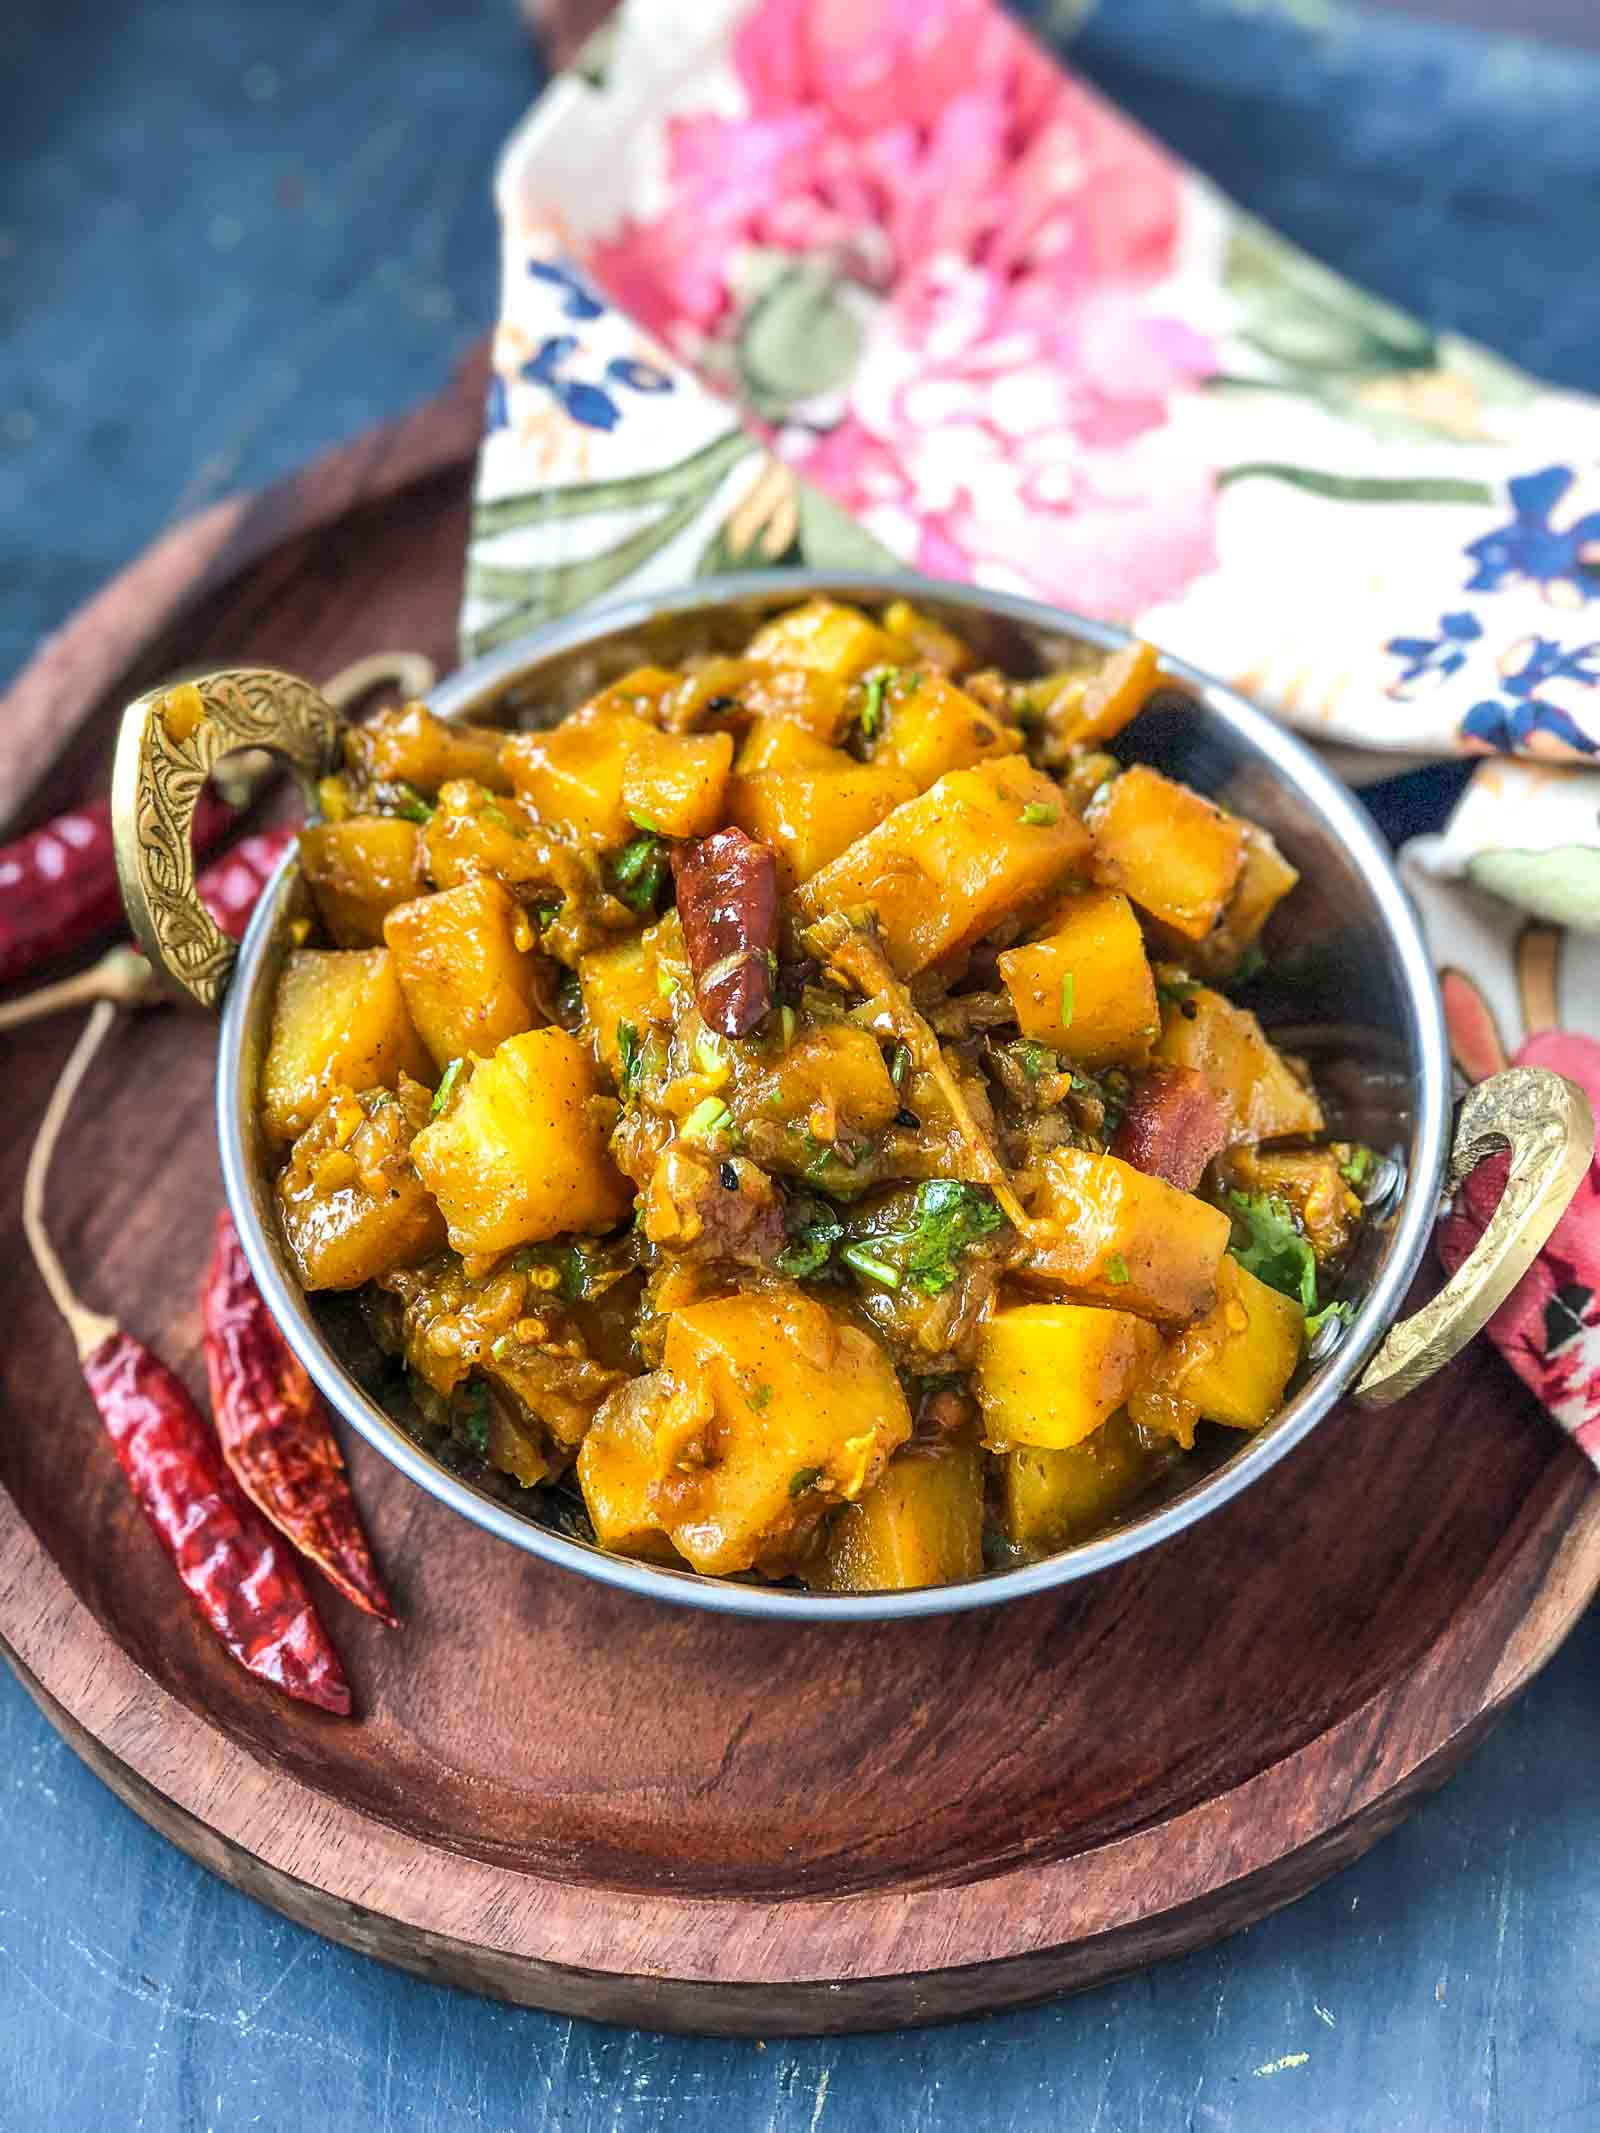 Achari Aloo Sabzi Recipe- Potatoes Cooked In A Spicy Pickle Masala